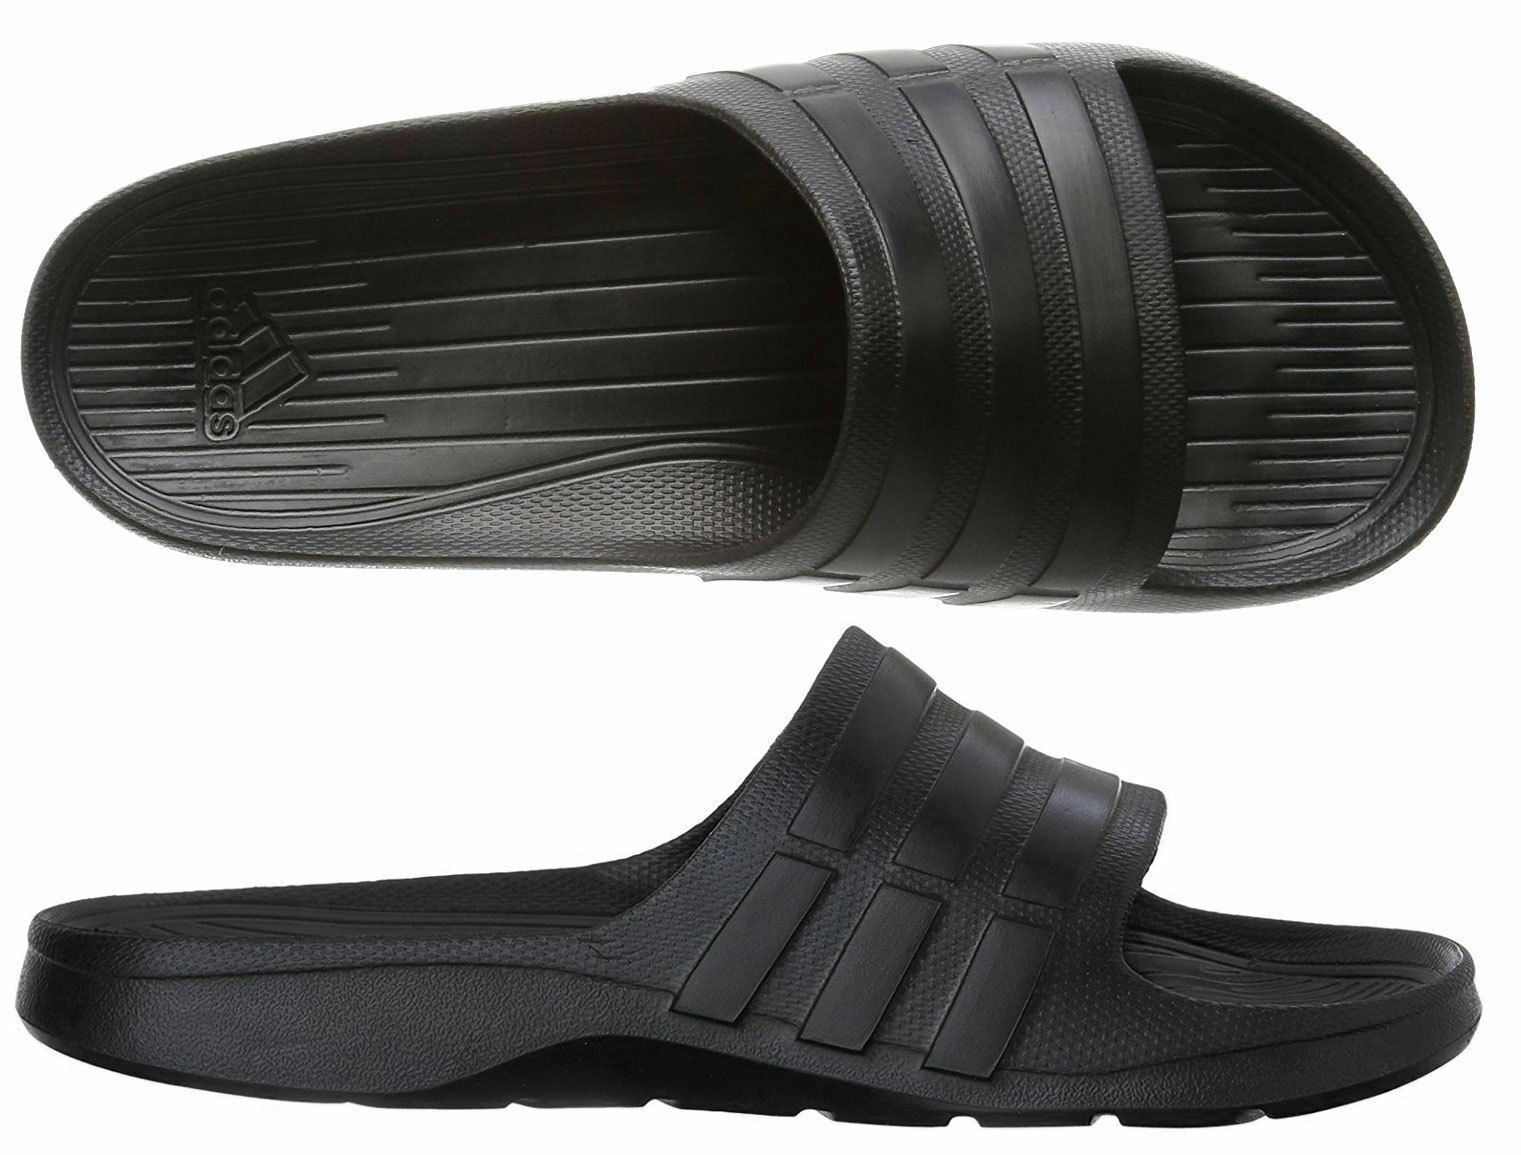 080227987971 Adidas Men s Duramo Slide Sandals Beach Shoes Flip Flops S77991 - Black